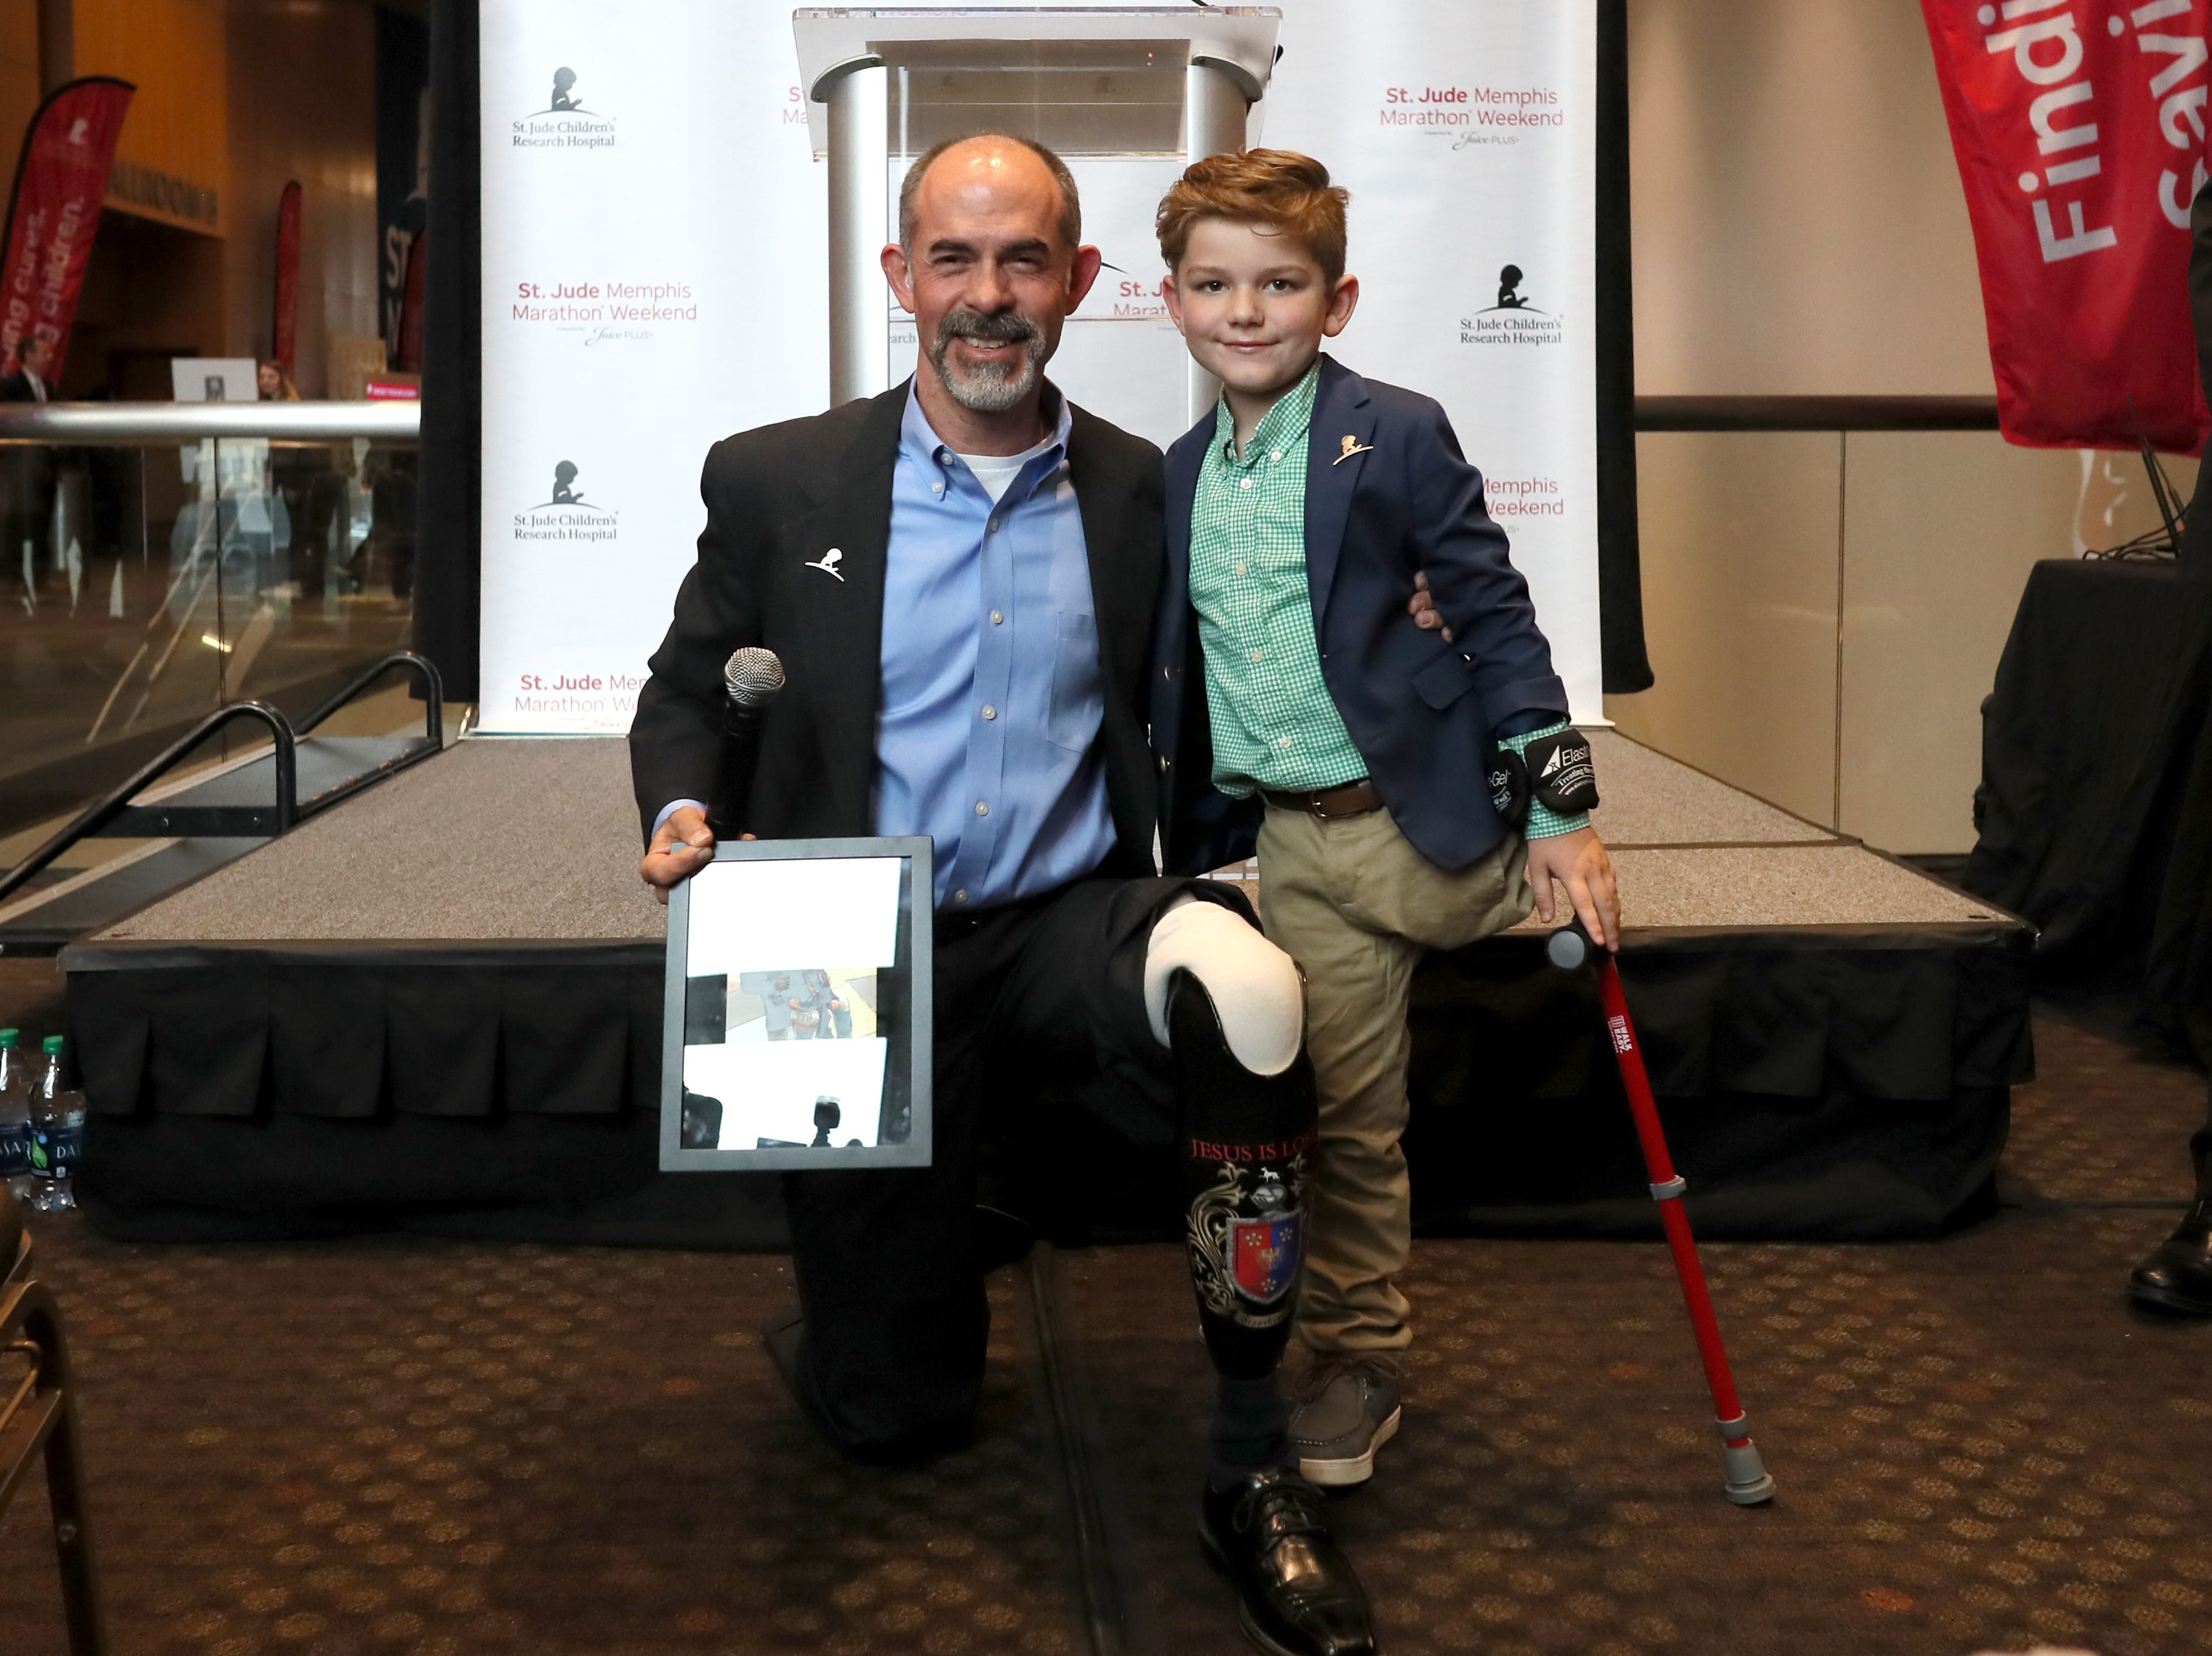 St. Jude Hero Among Us award recipient Kent Stoneking poses for a portrait with Kael Hill, 6, during a press conference at the Cook Convention Center Thursday, Nov. 29, 2018.